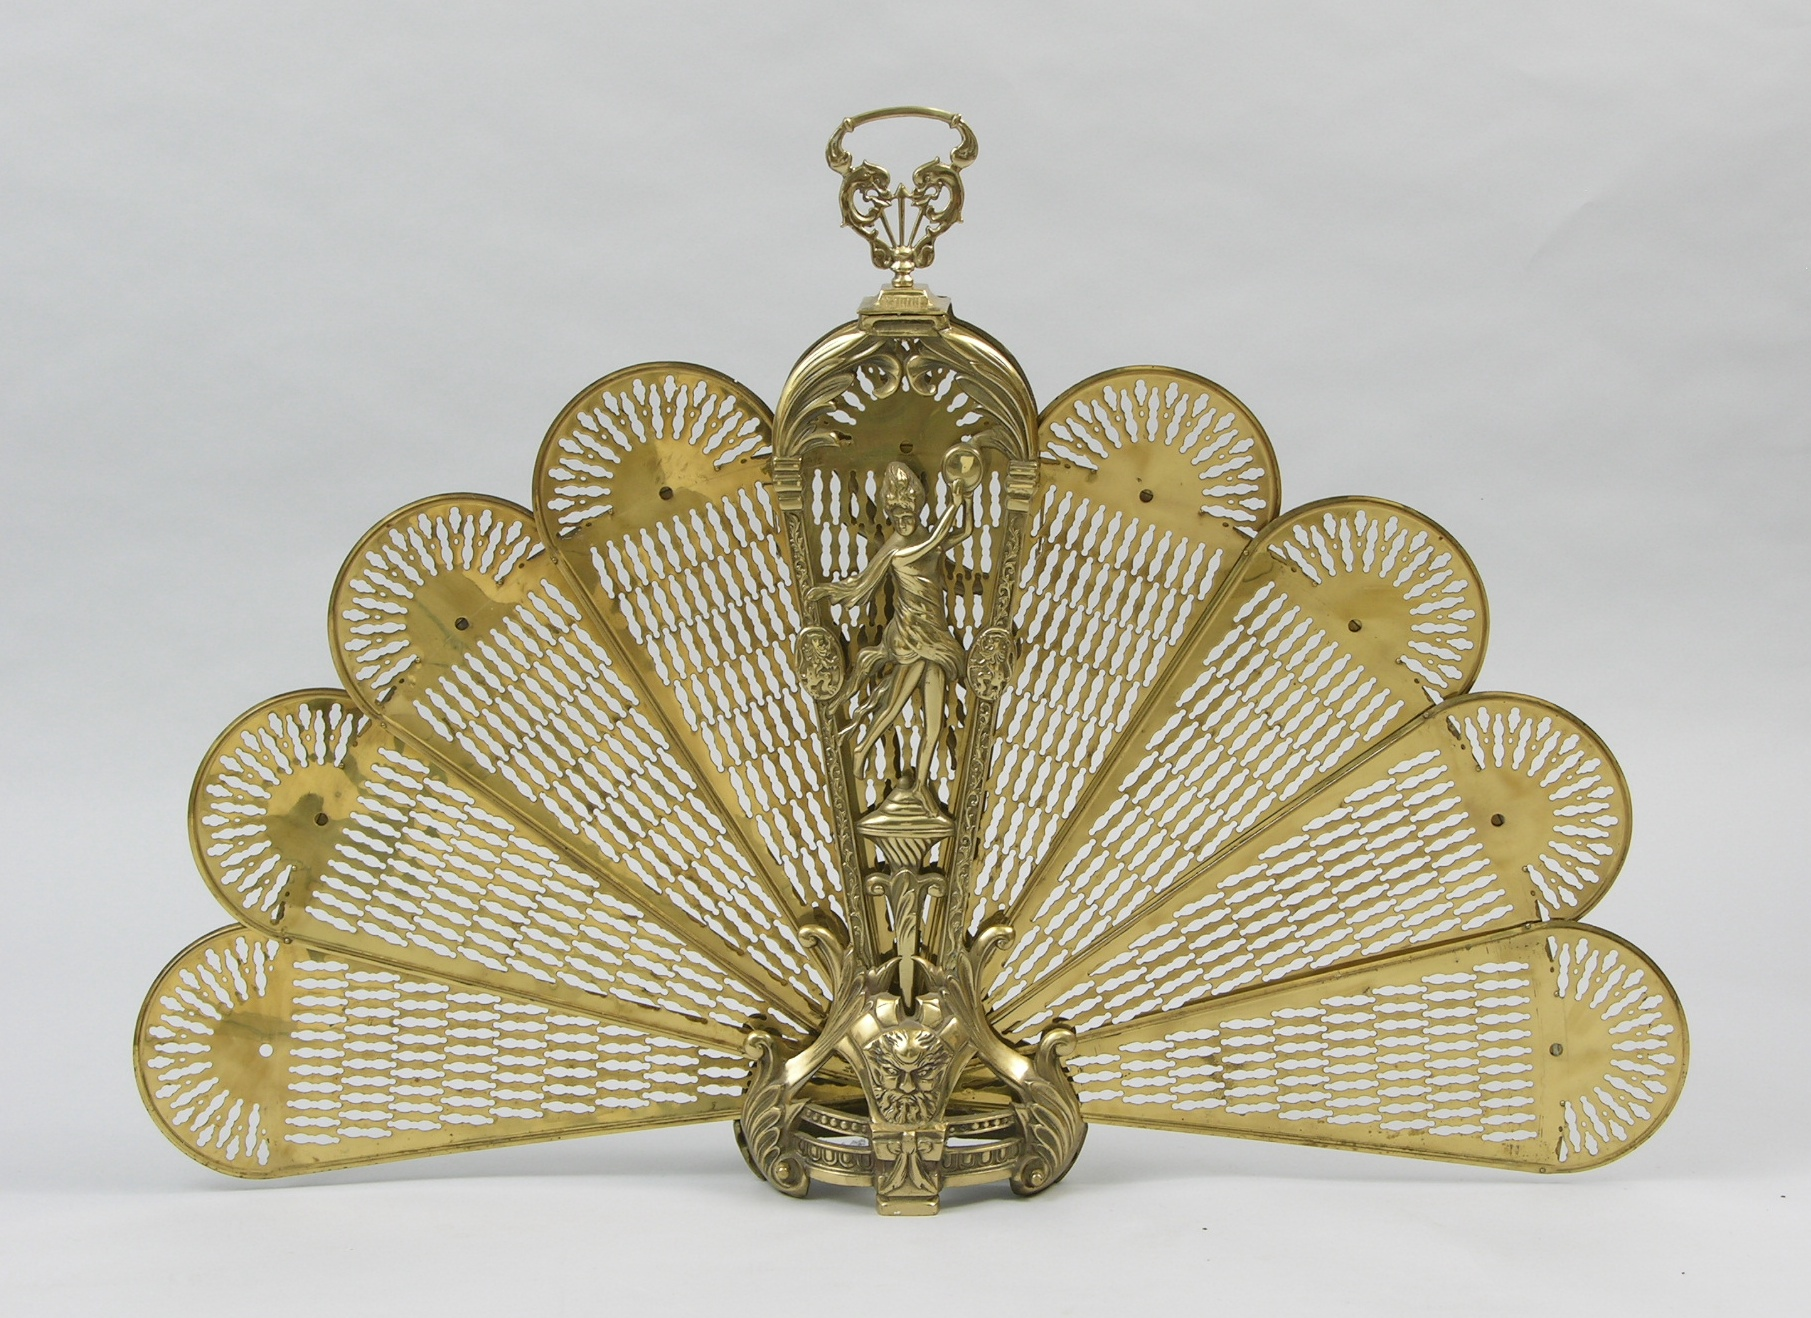 A Victorian Brass Fireplace Fan, 05.18.07, Sold: $69